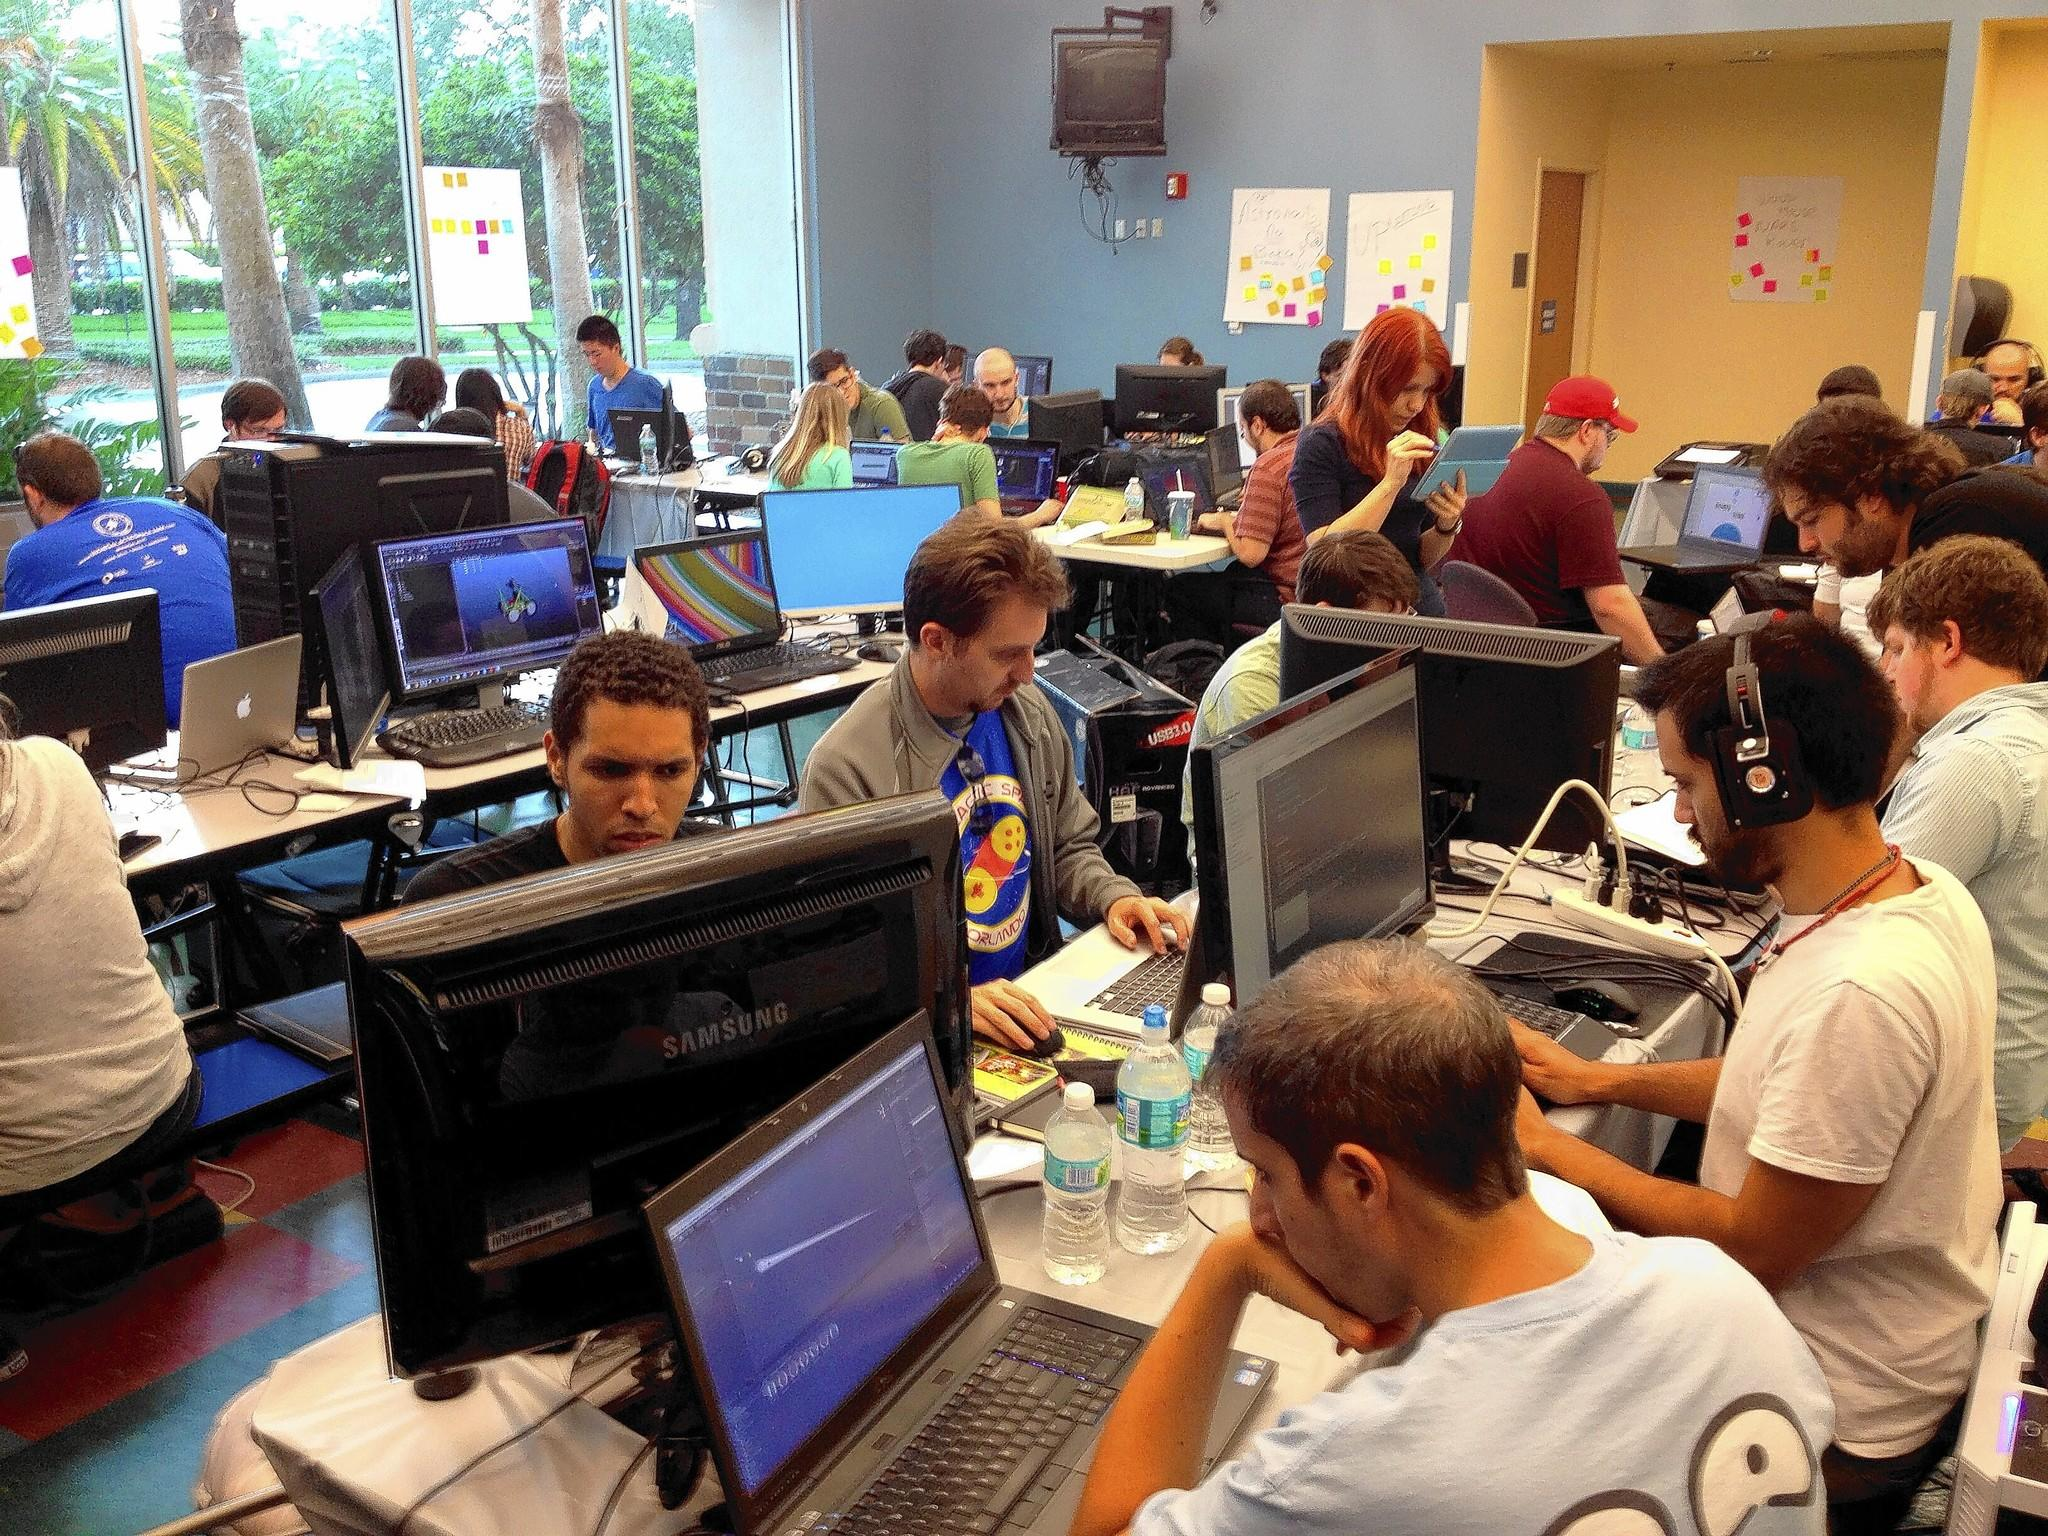 Teams work on developing space travel video games at IndieGalactic Space Jam.